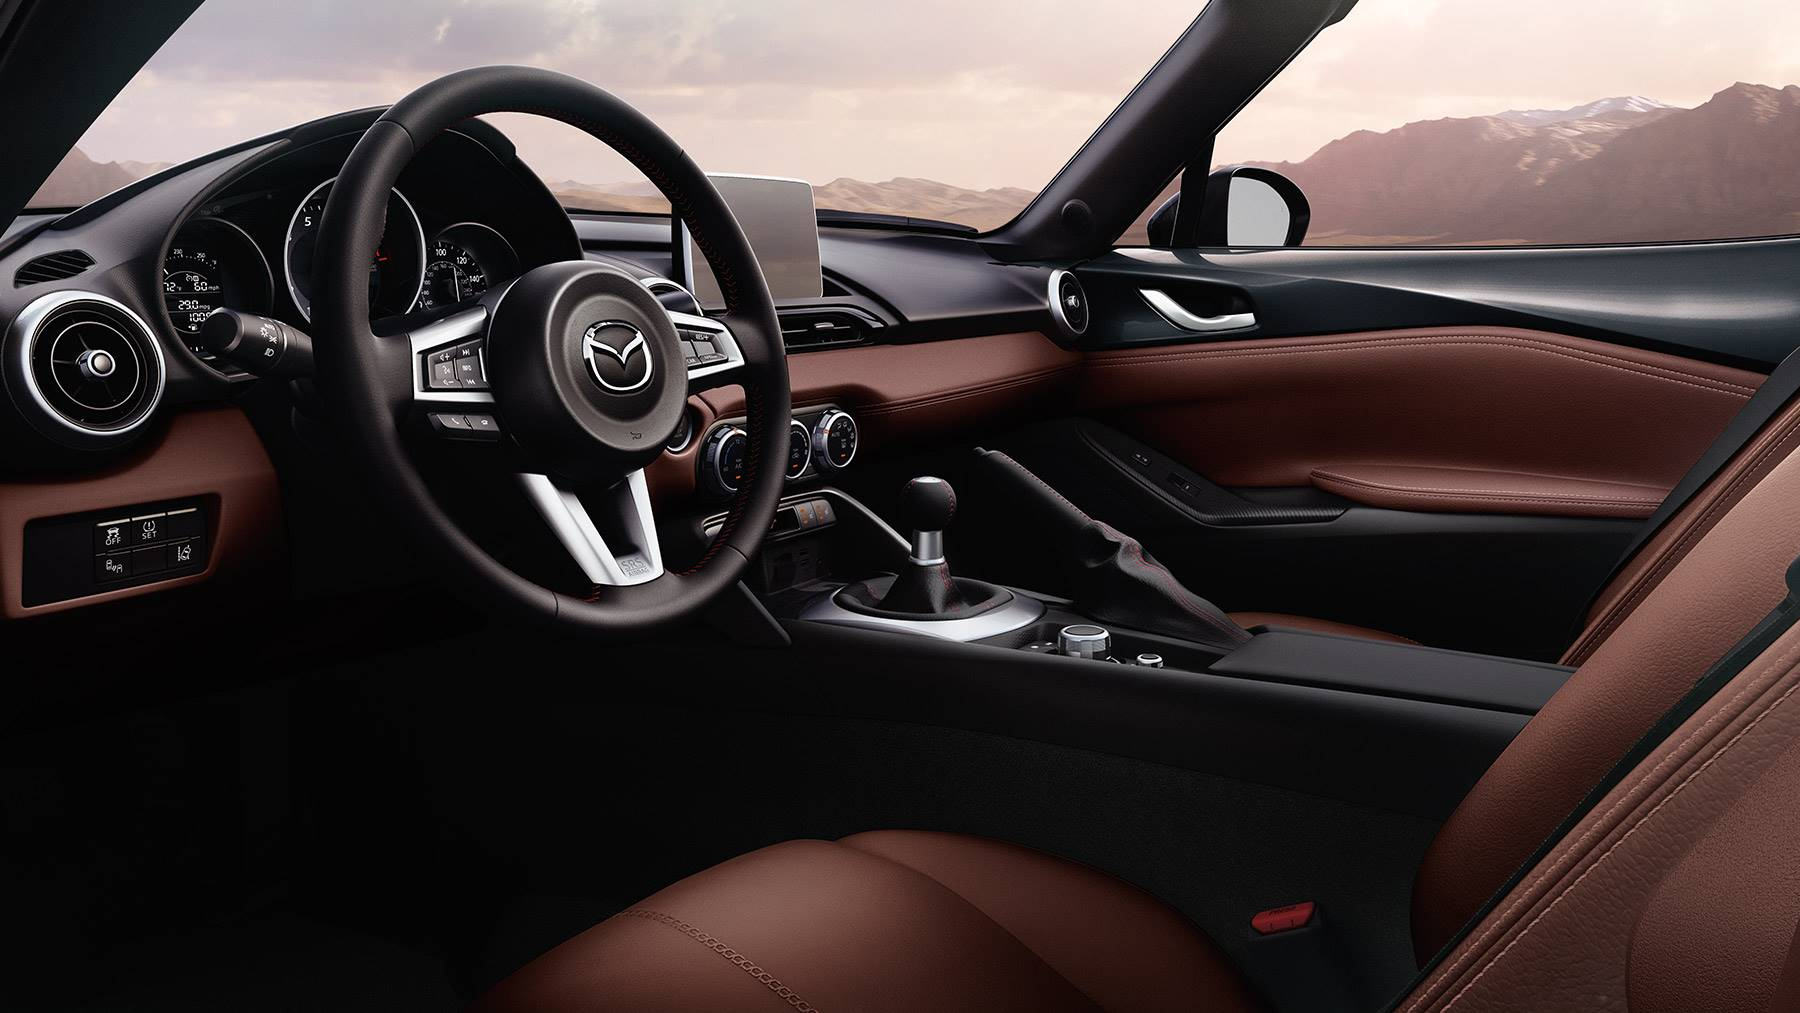 Advanced Cabin of the 2018 Mazda MX-5 Miata